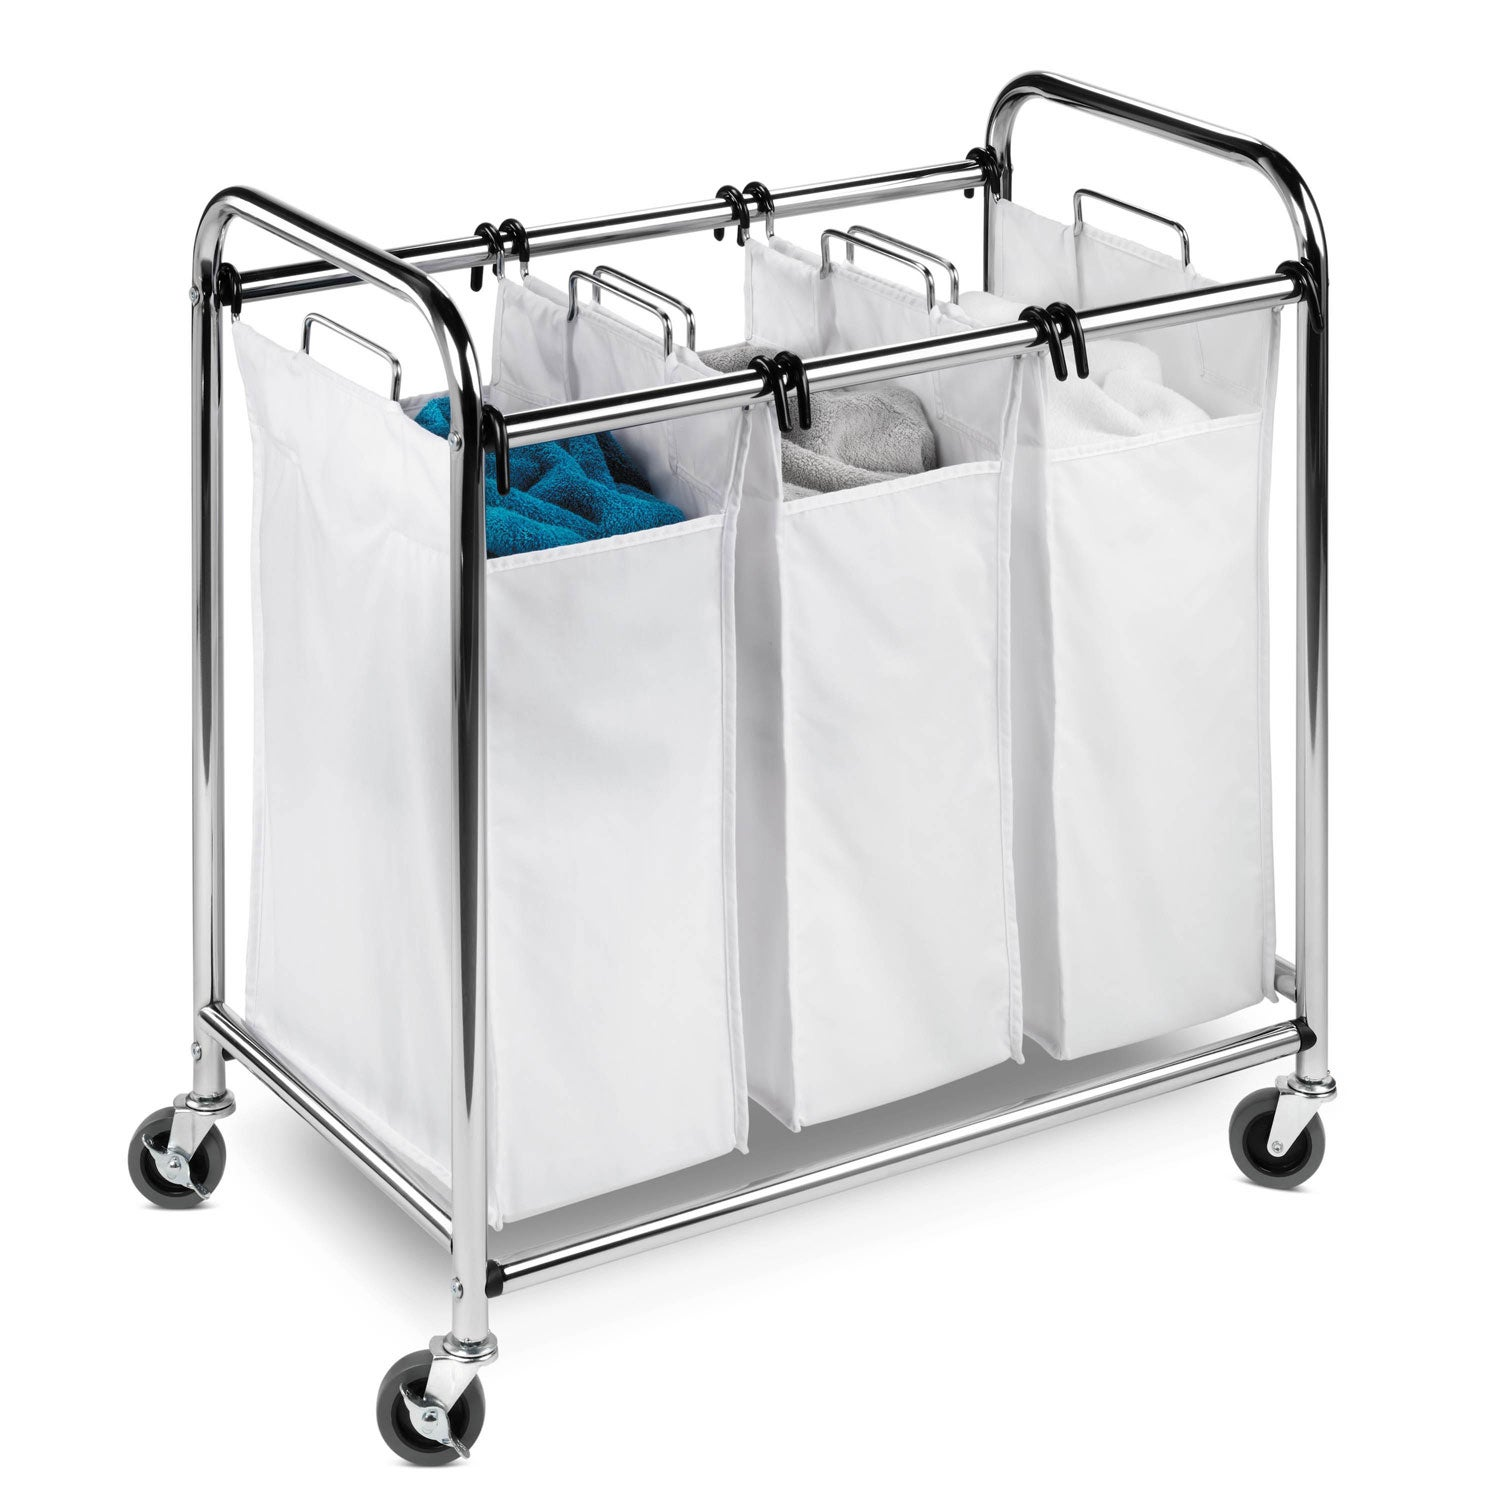 Honey-Can-Do SRT-01235 Triple Laundry Sorter at Sears.com